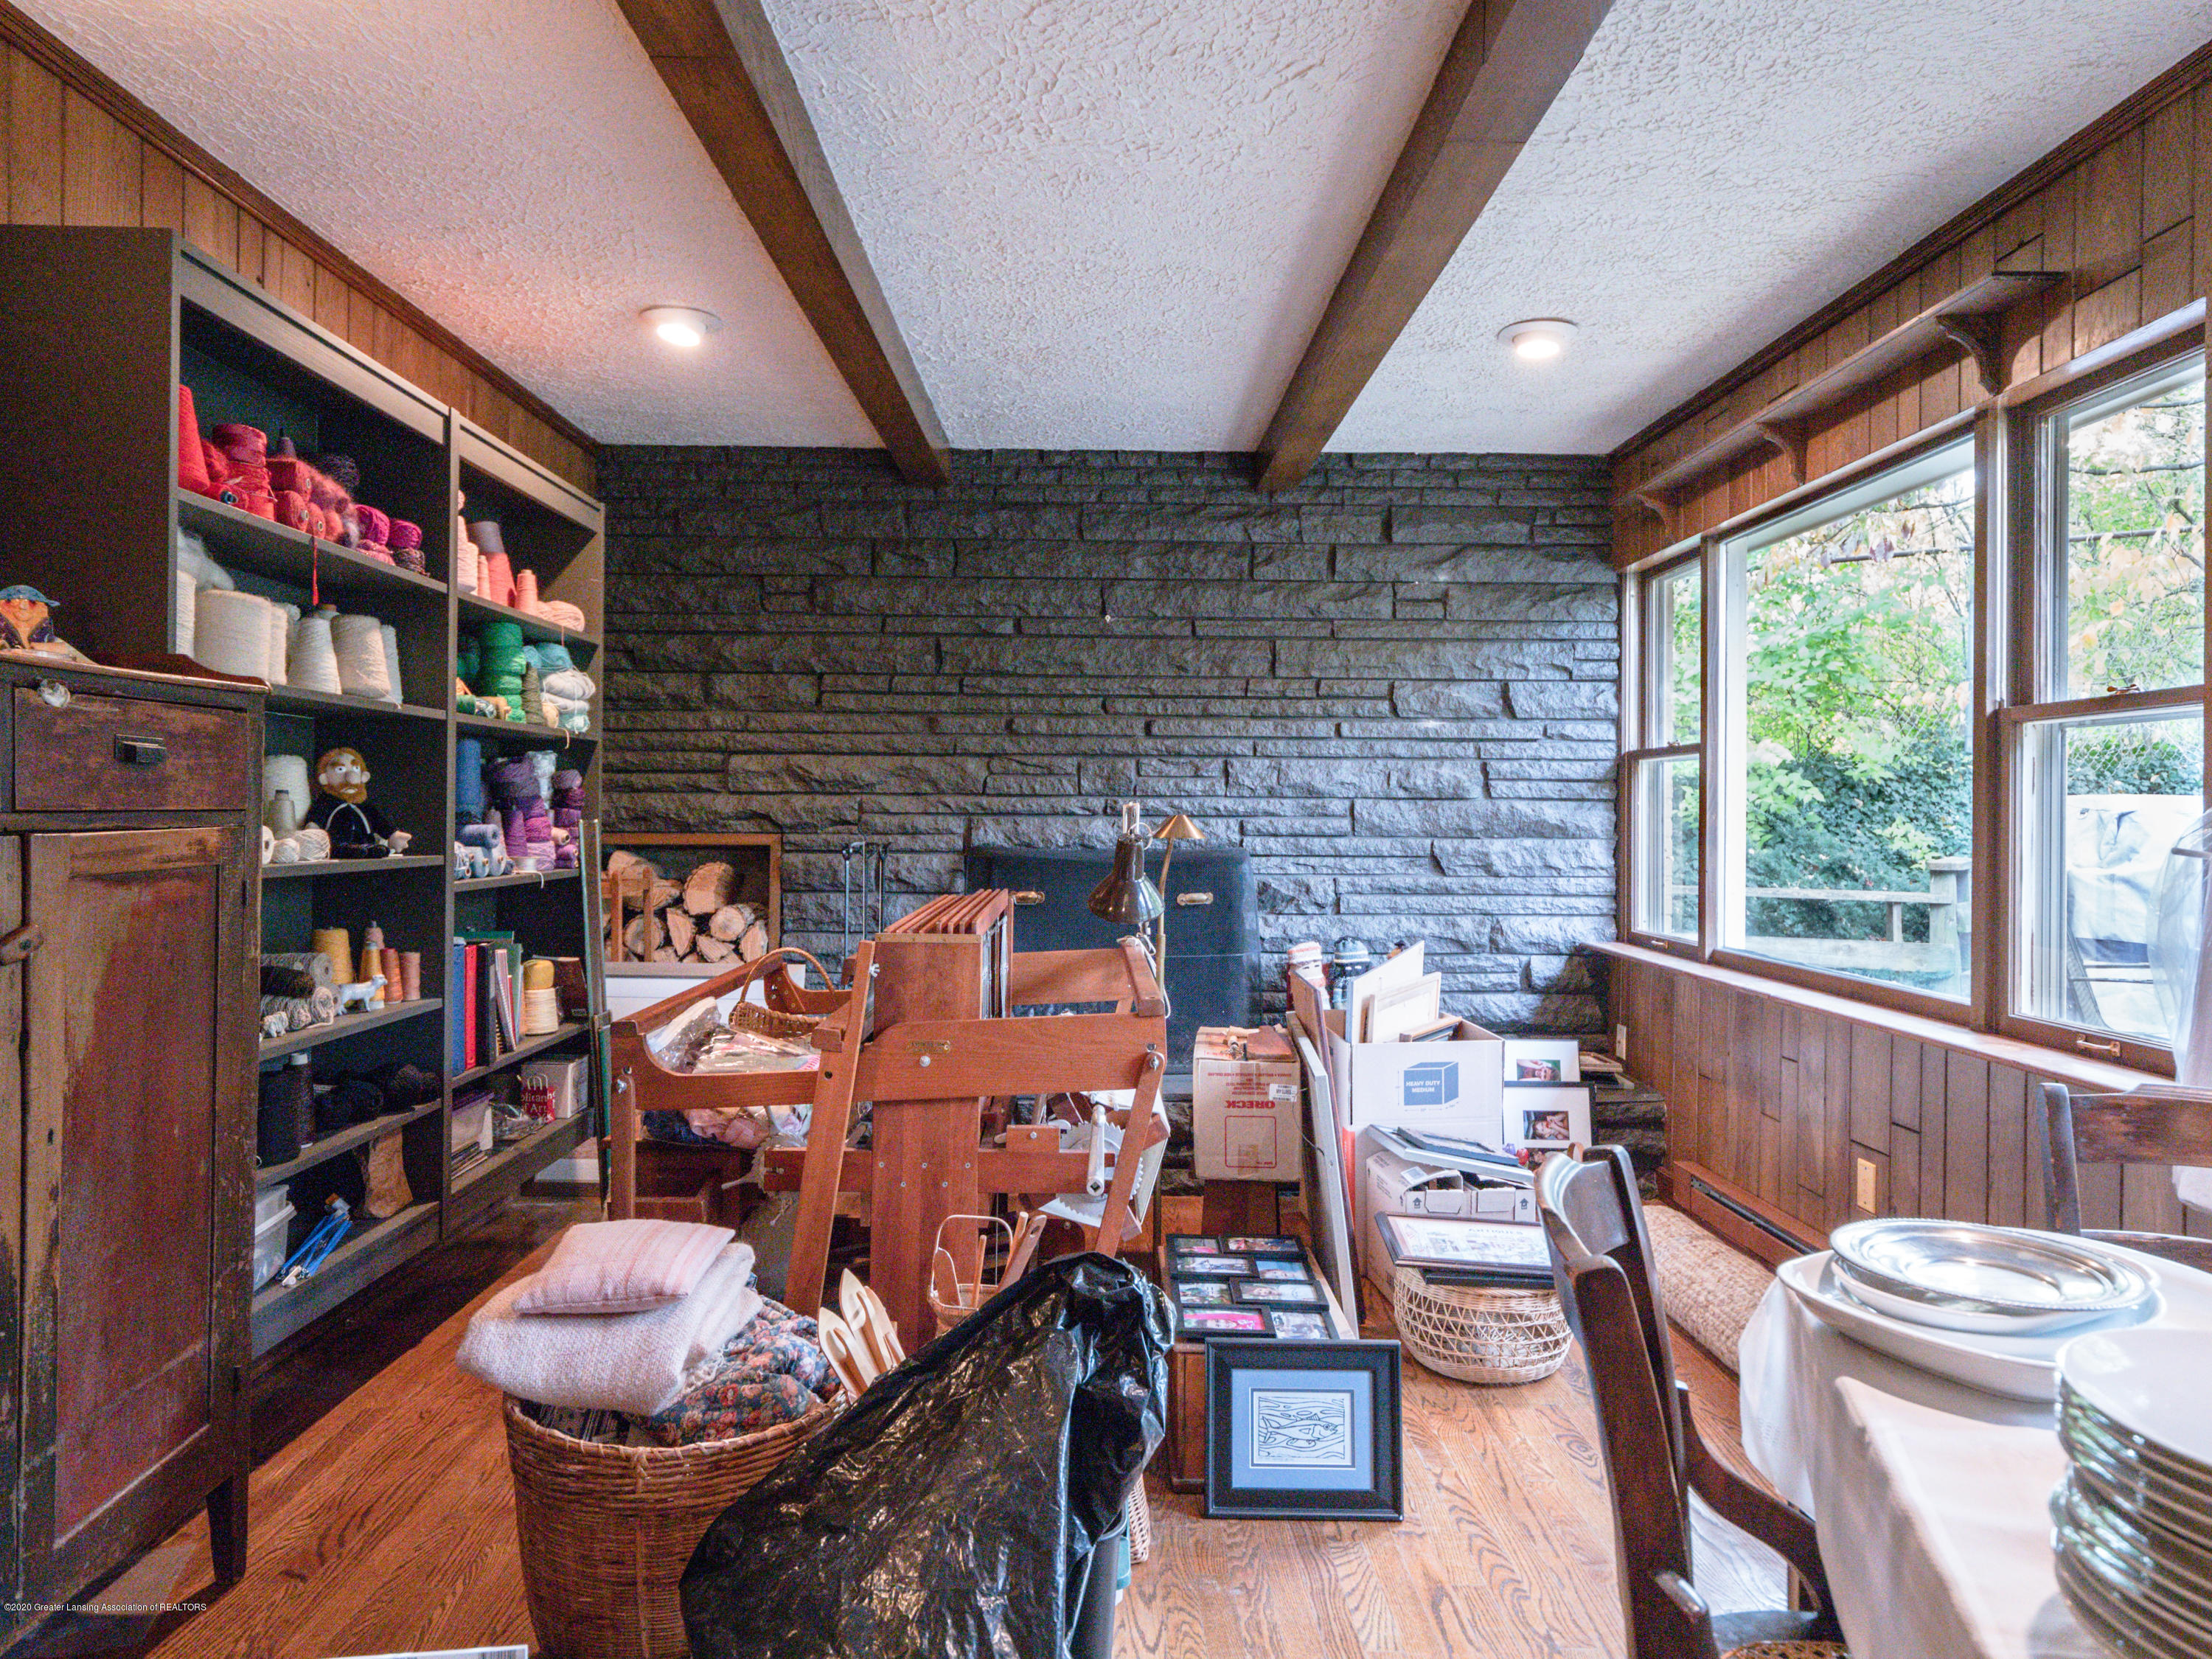 553 Southlawn Ave - 553_Southlawn_Ave-12 - 8